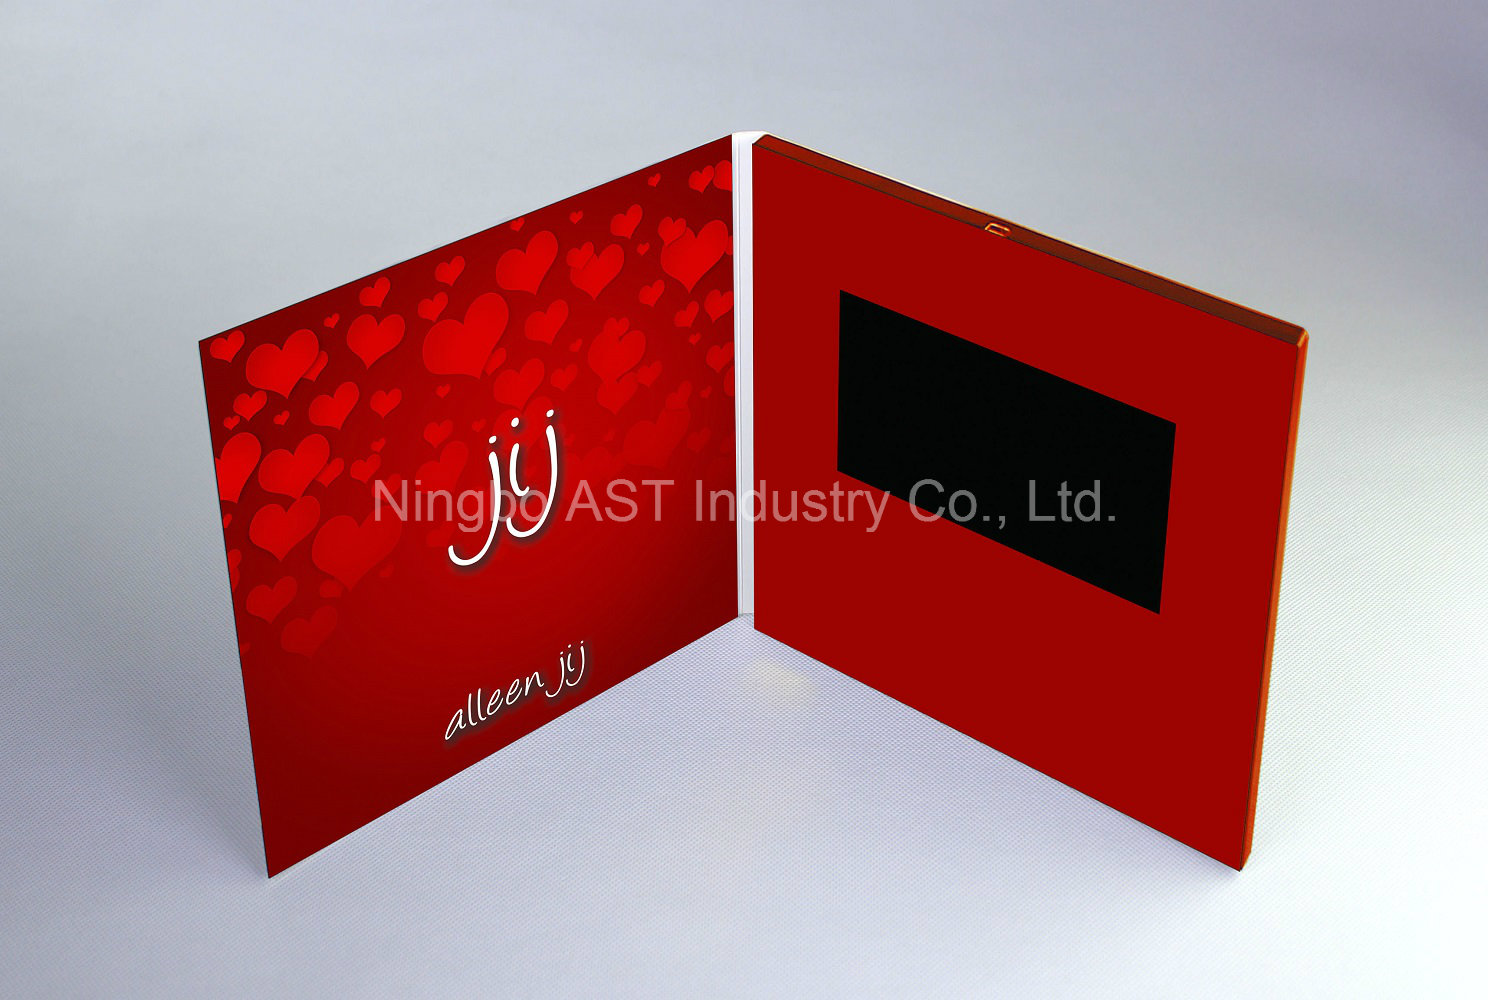 7.0 Inch Video Brochure, 7.0 Inch Video Brochure, Video Business Card